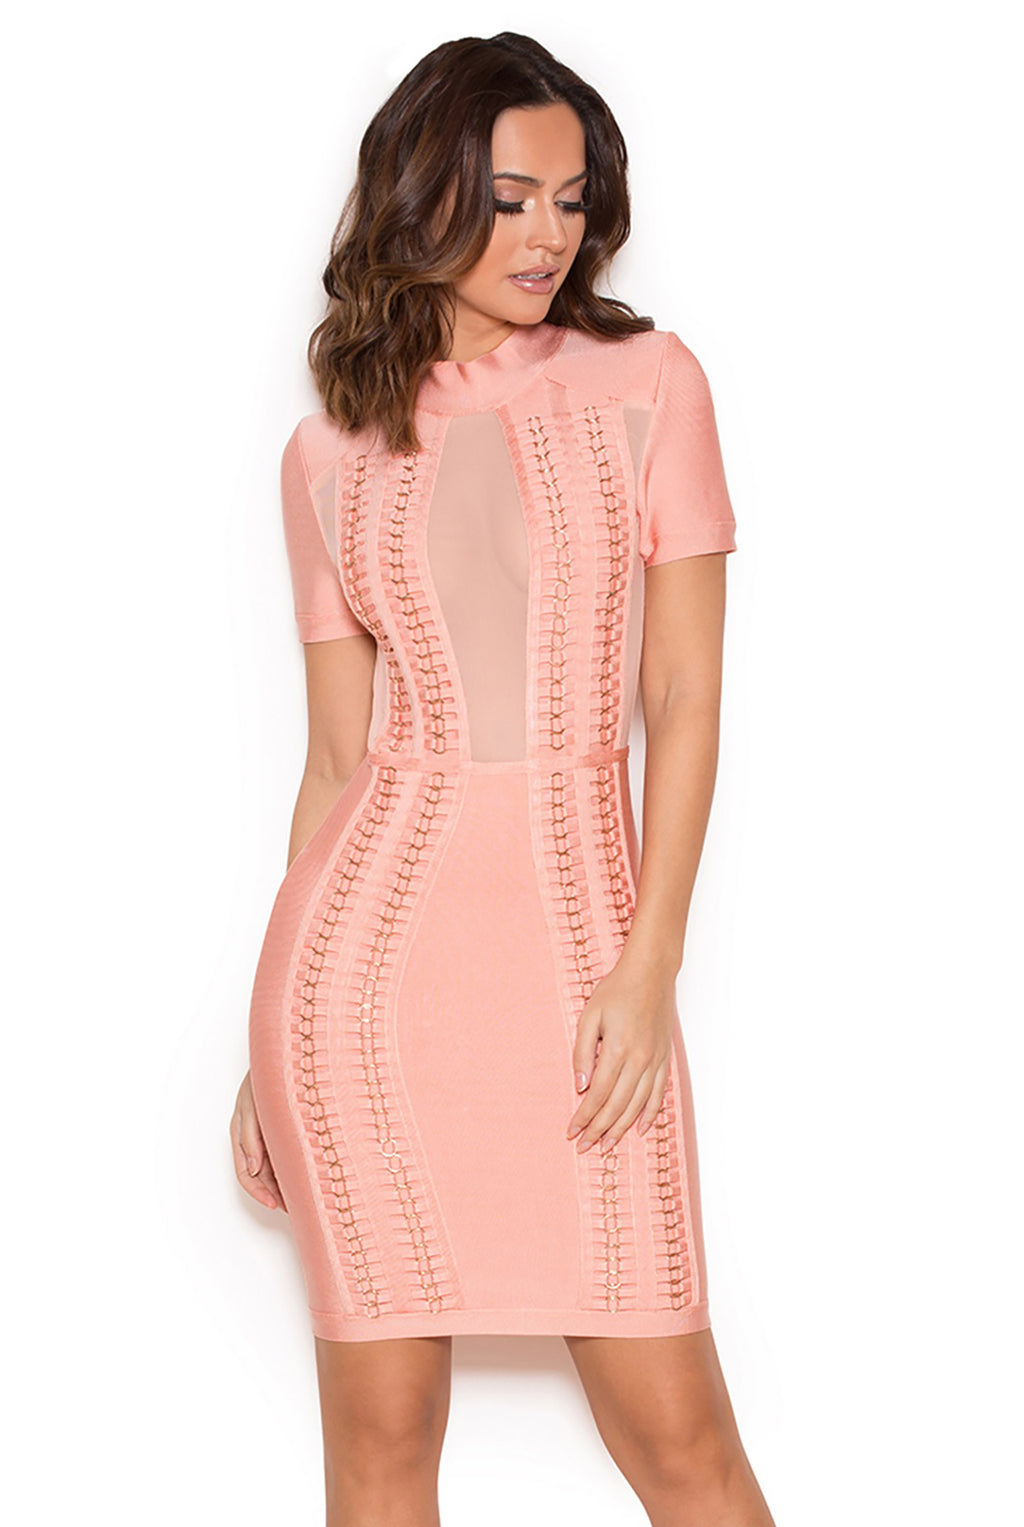 Monalisa Mesh Pink Panel Bandage Dress - STEVEN WICK